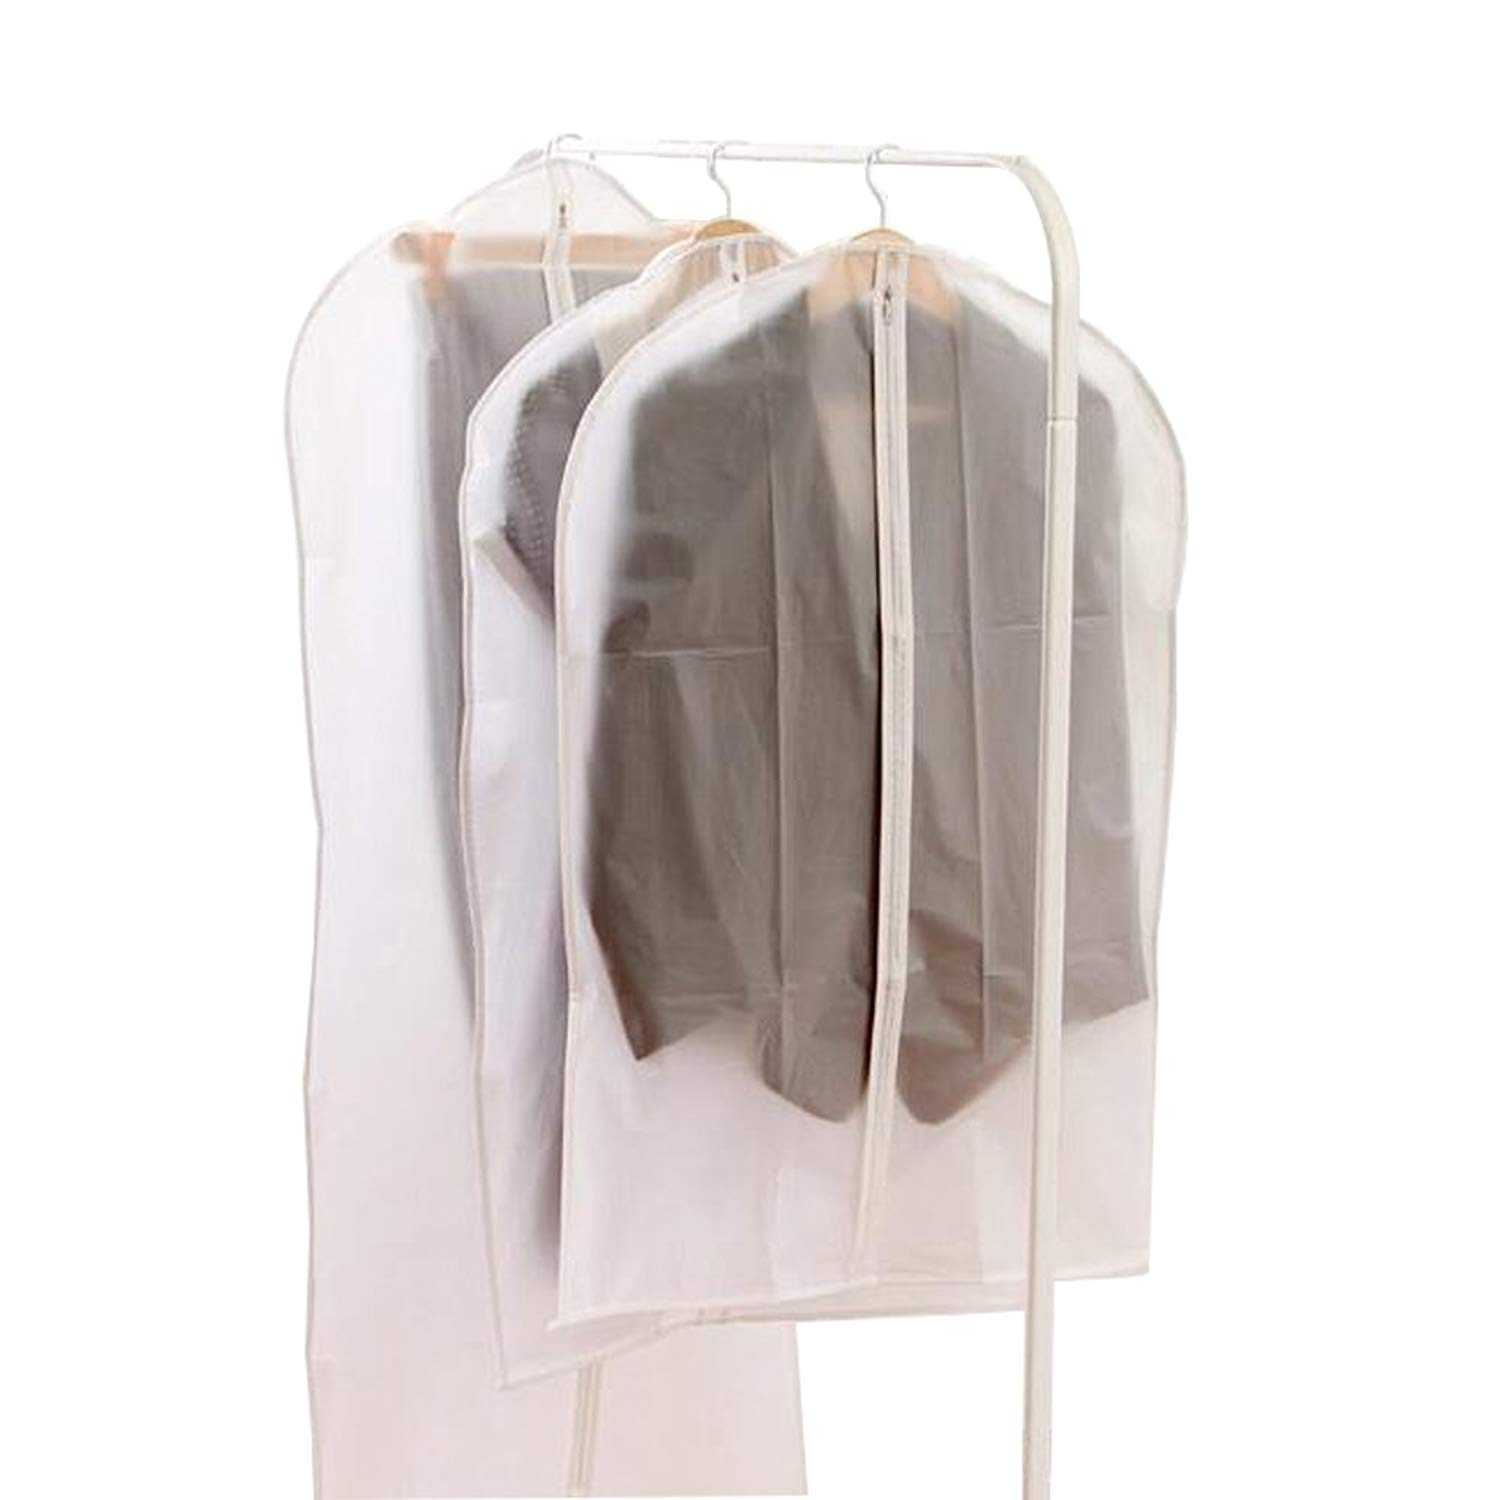 Garment Bag Clear Long Suit Bag Dust Moth Proof Garment Bags White Breathable Full Zipper Dust Cover for Dance Dress Clothes 24in 34in / 40 in / 49 in, Each 2 pieces